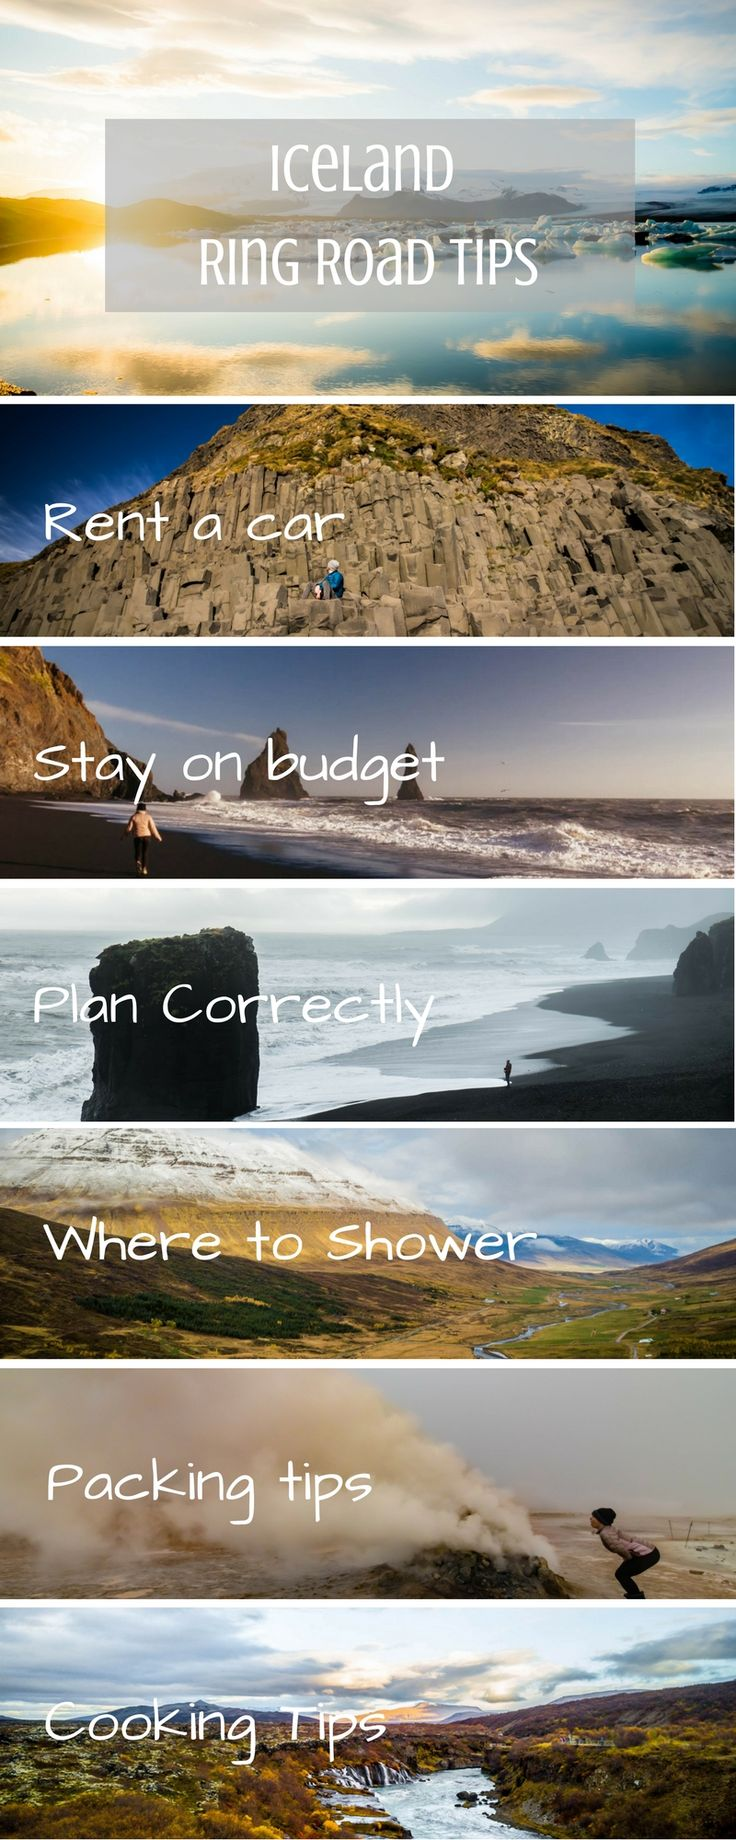 These are some of the best tips for those who travel to Iceland. If you are road tripping and camping this guide is for you.